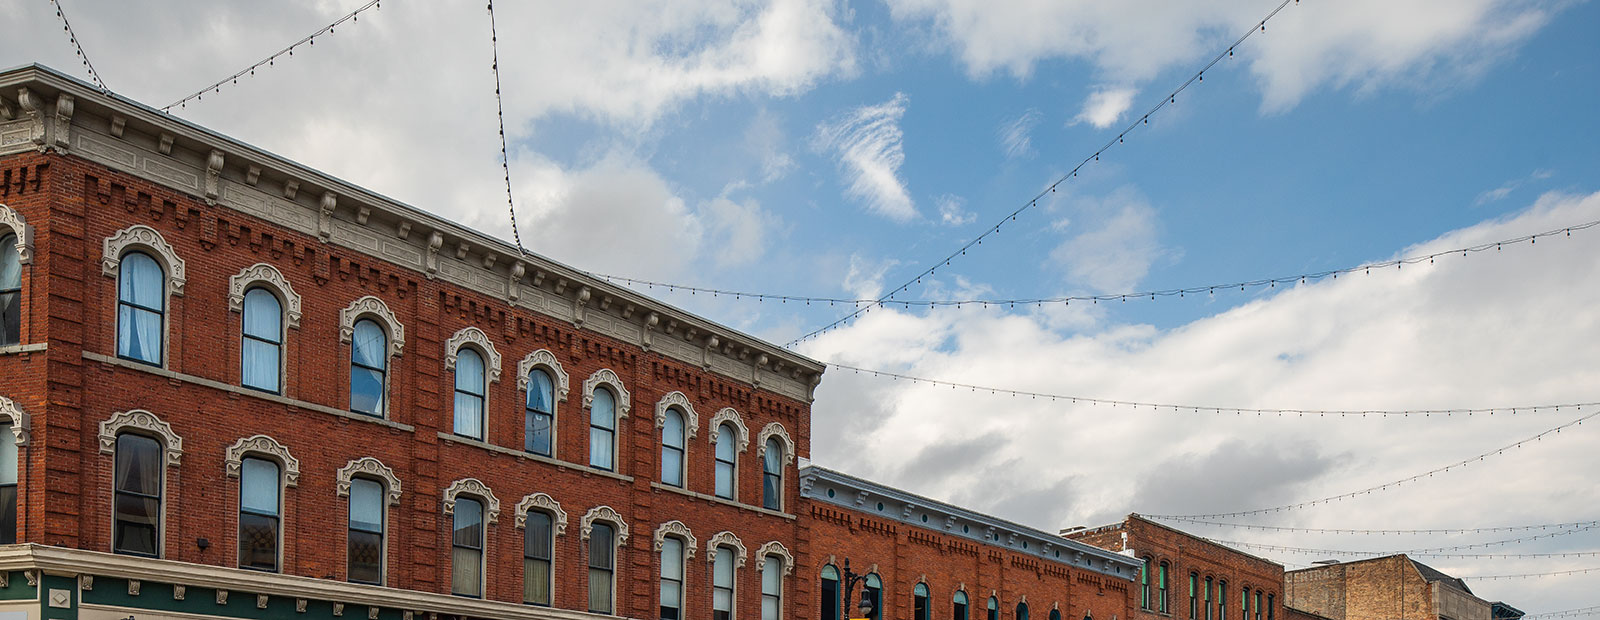 Lights are strung across the buildings of downtown Port Huron. <span class=&apos;image-credits&apos;>David Lewinski</span>